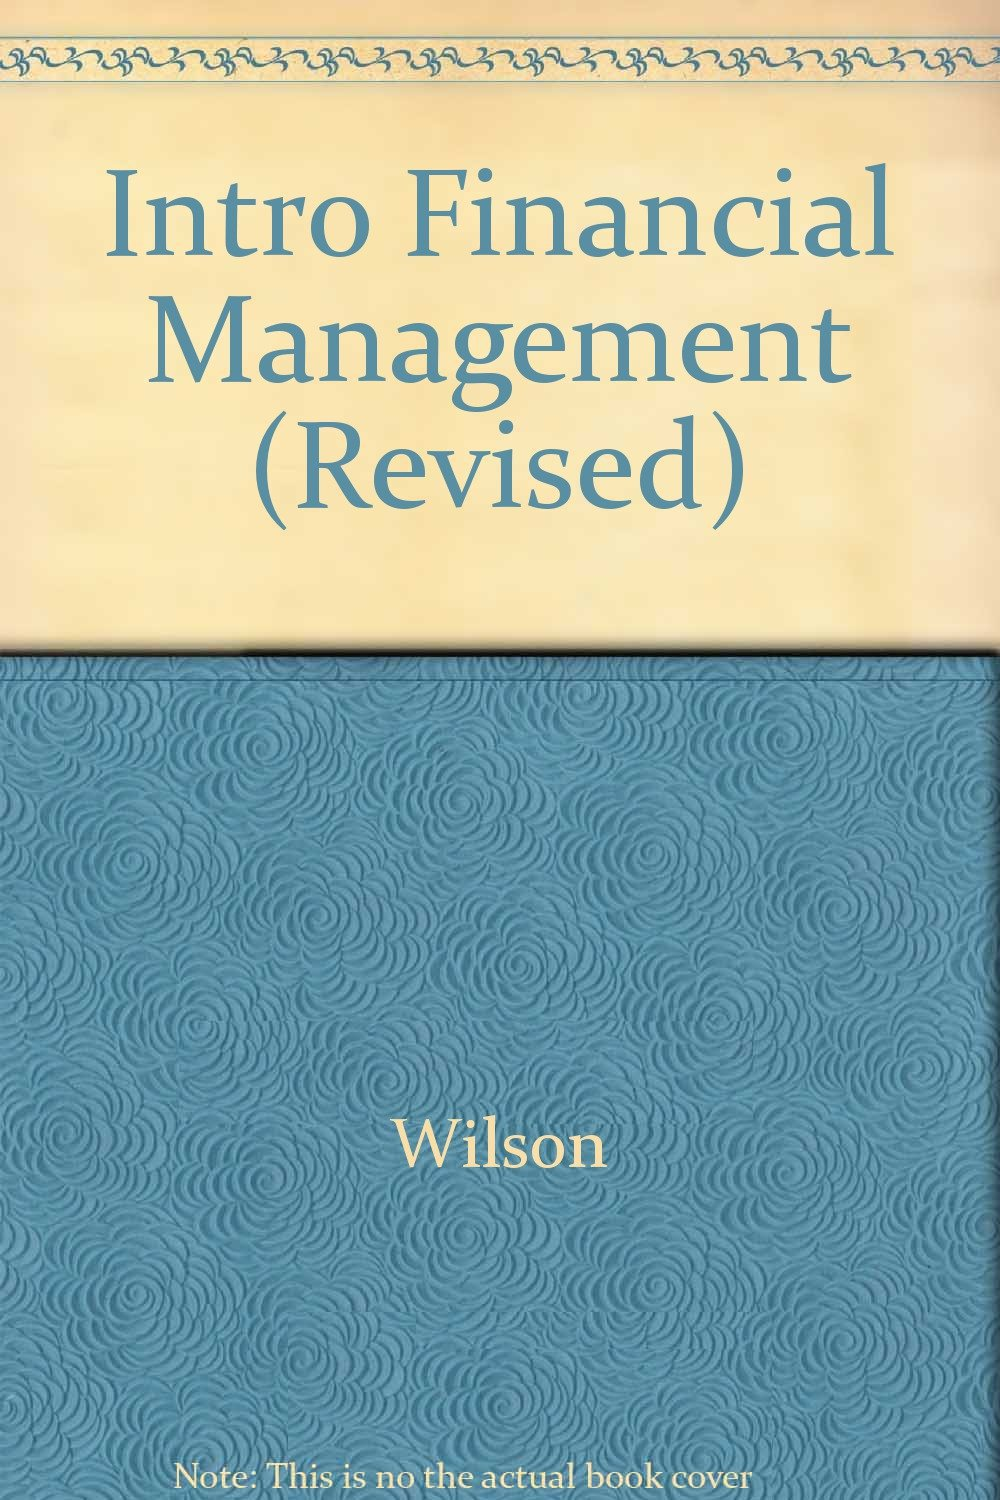 Intro Financial Management (Revised)